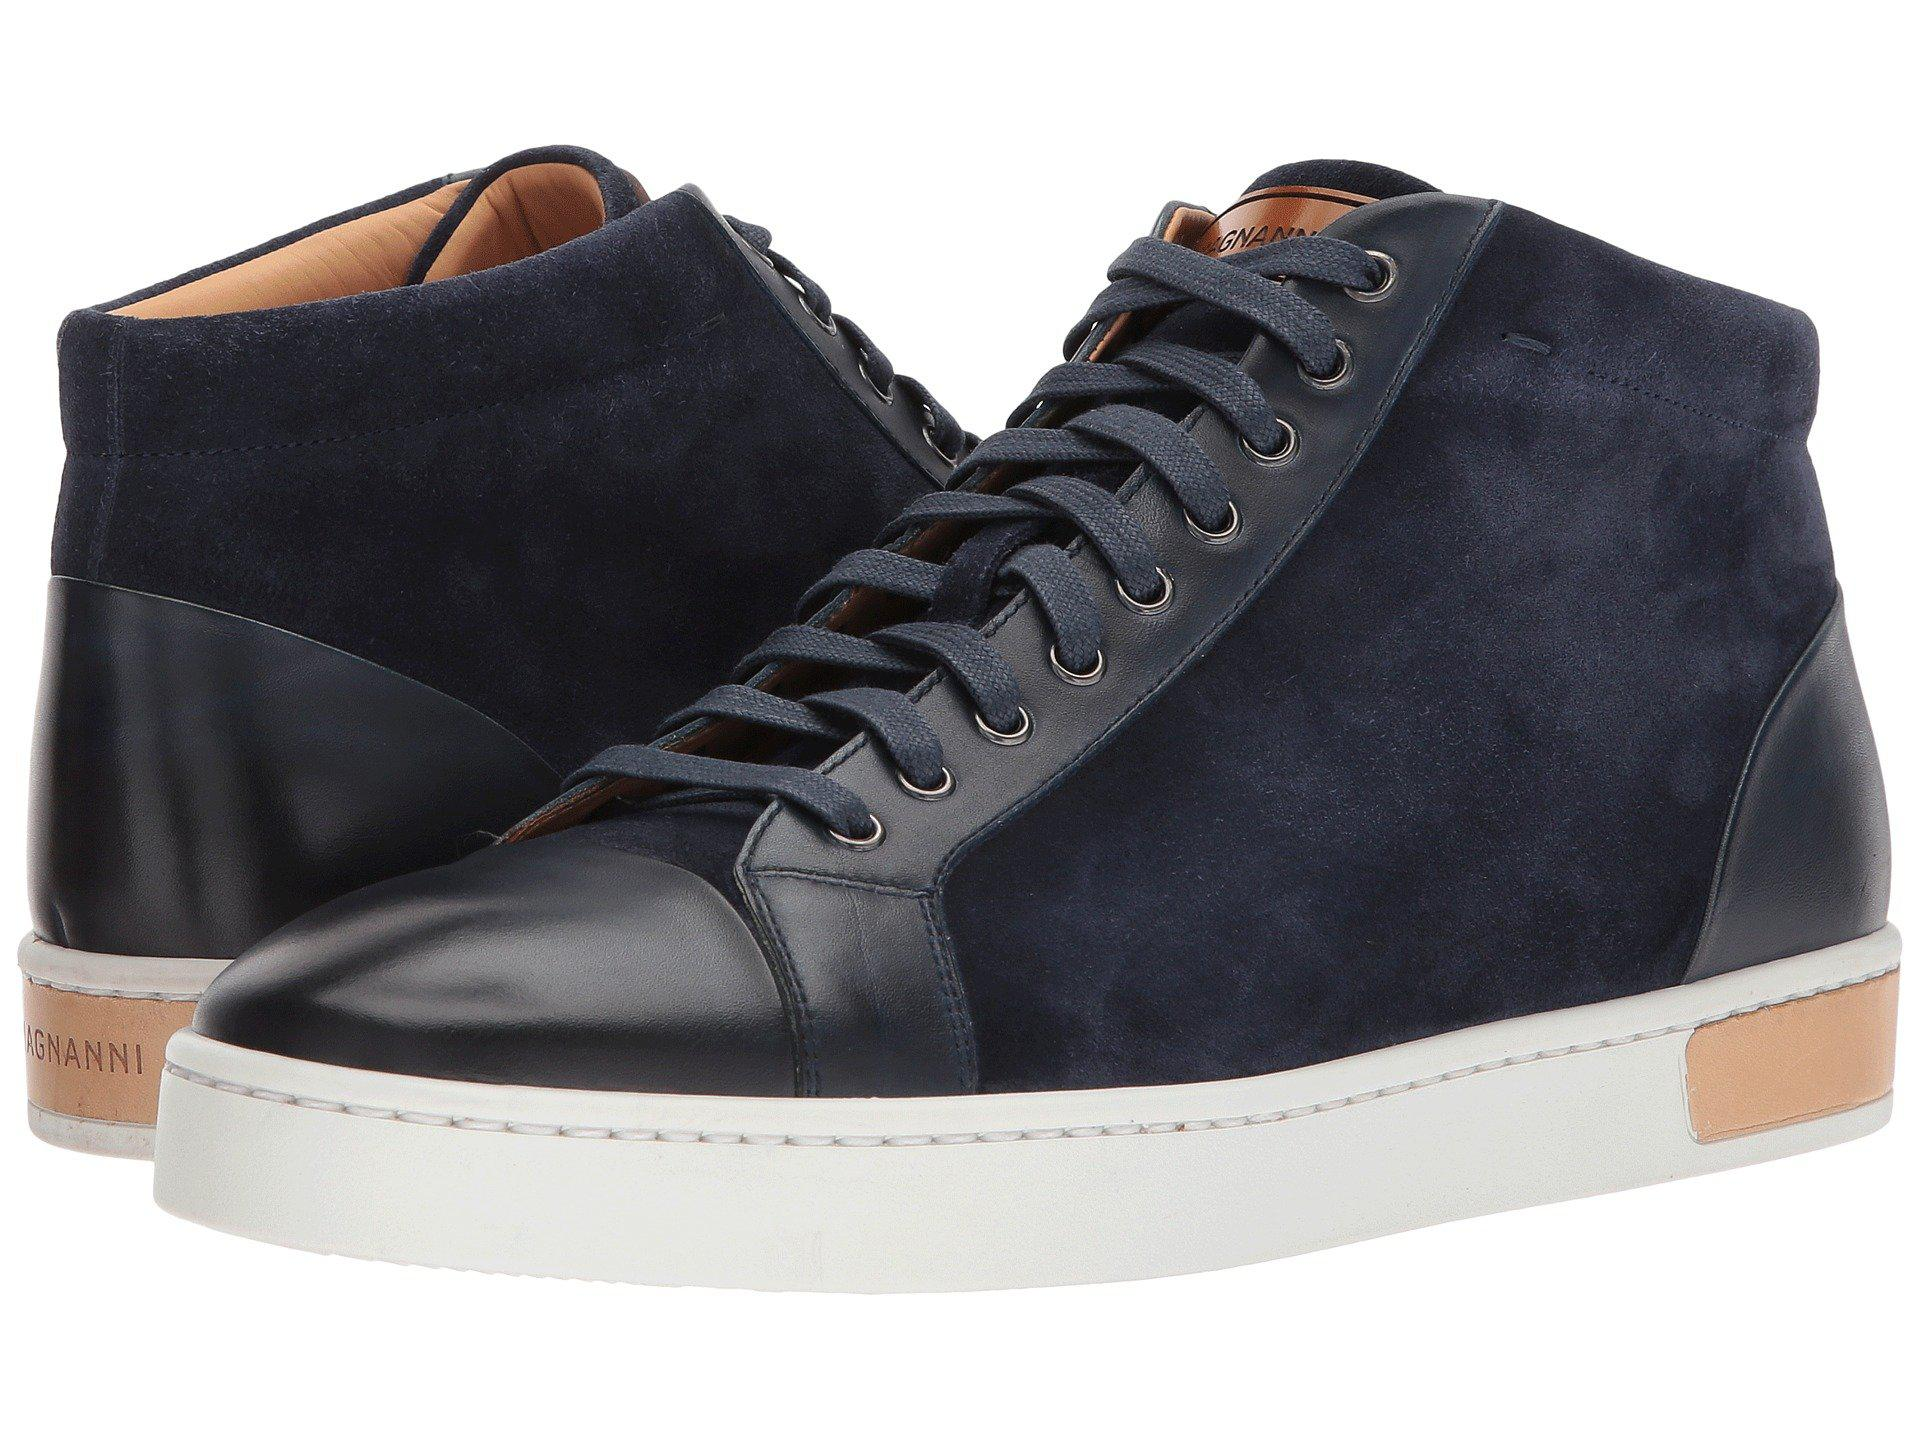 27624d4f4ab60 Lyst - Magnanni Cardiff (navy) Men s Shoes in Blue for Men